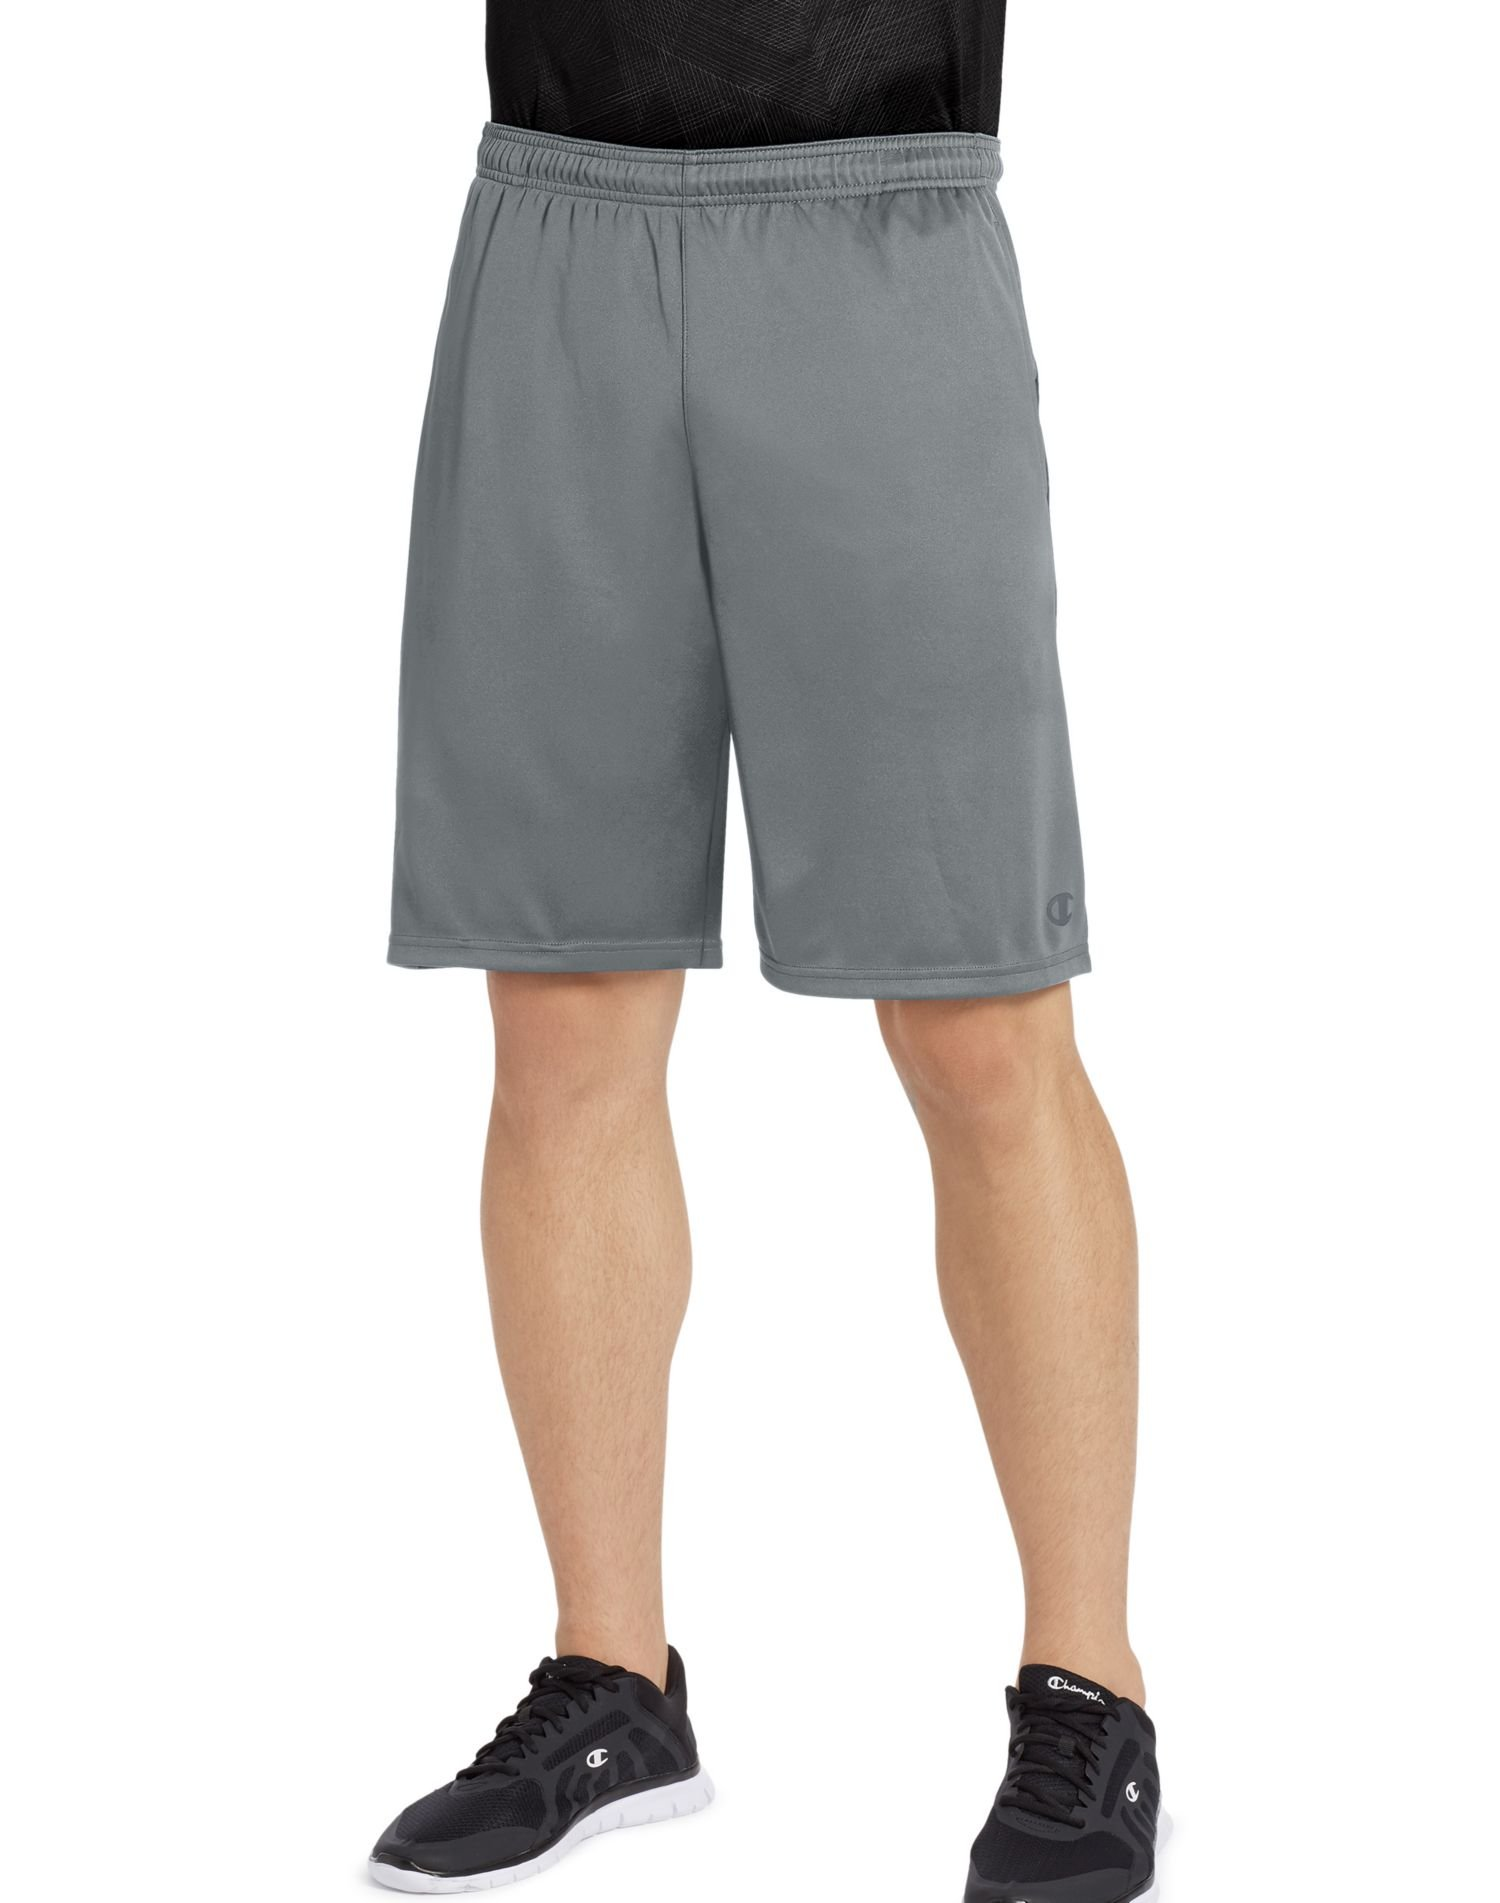 Champion Men's Double Dry Select Short, Concrete/Black, XXL